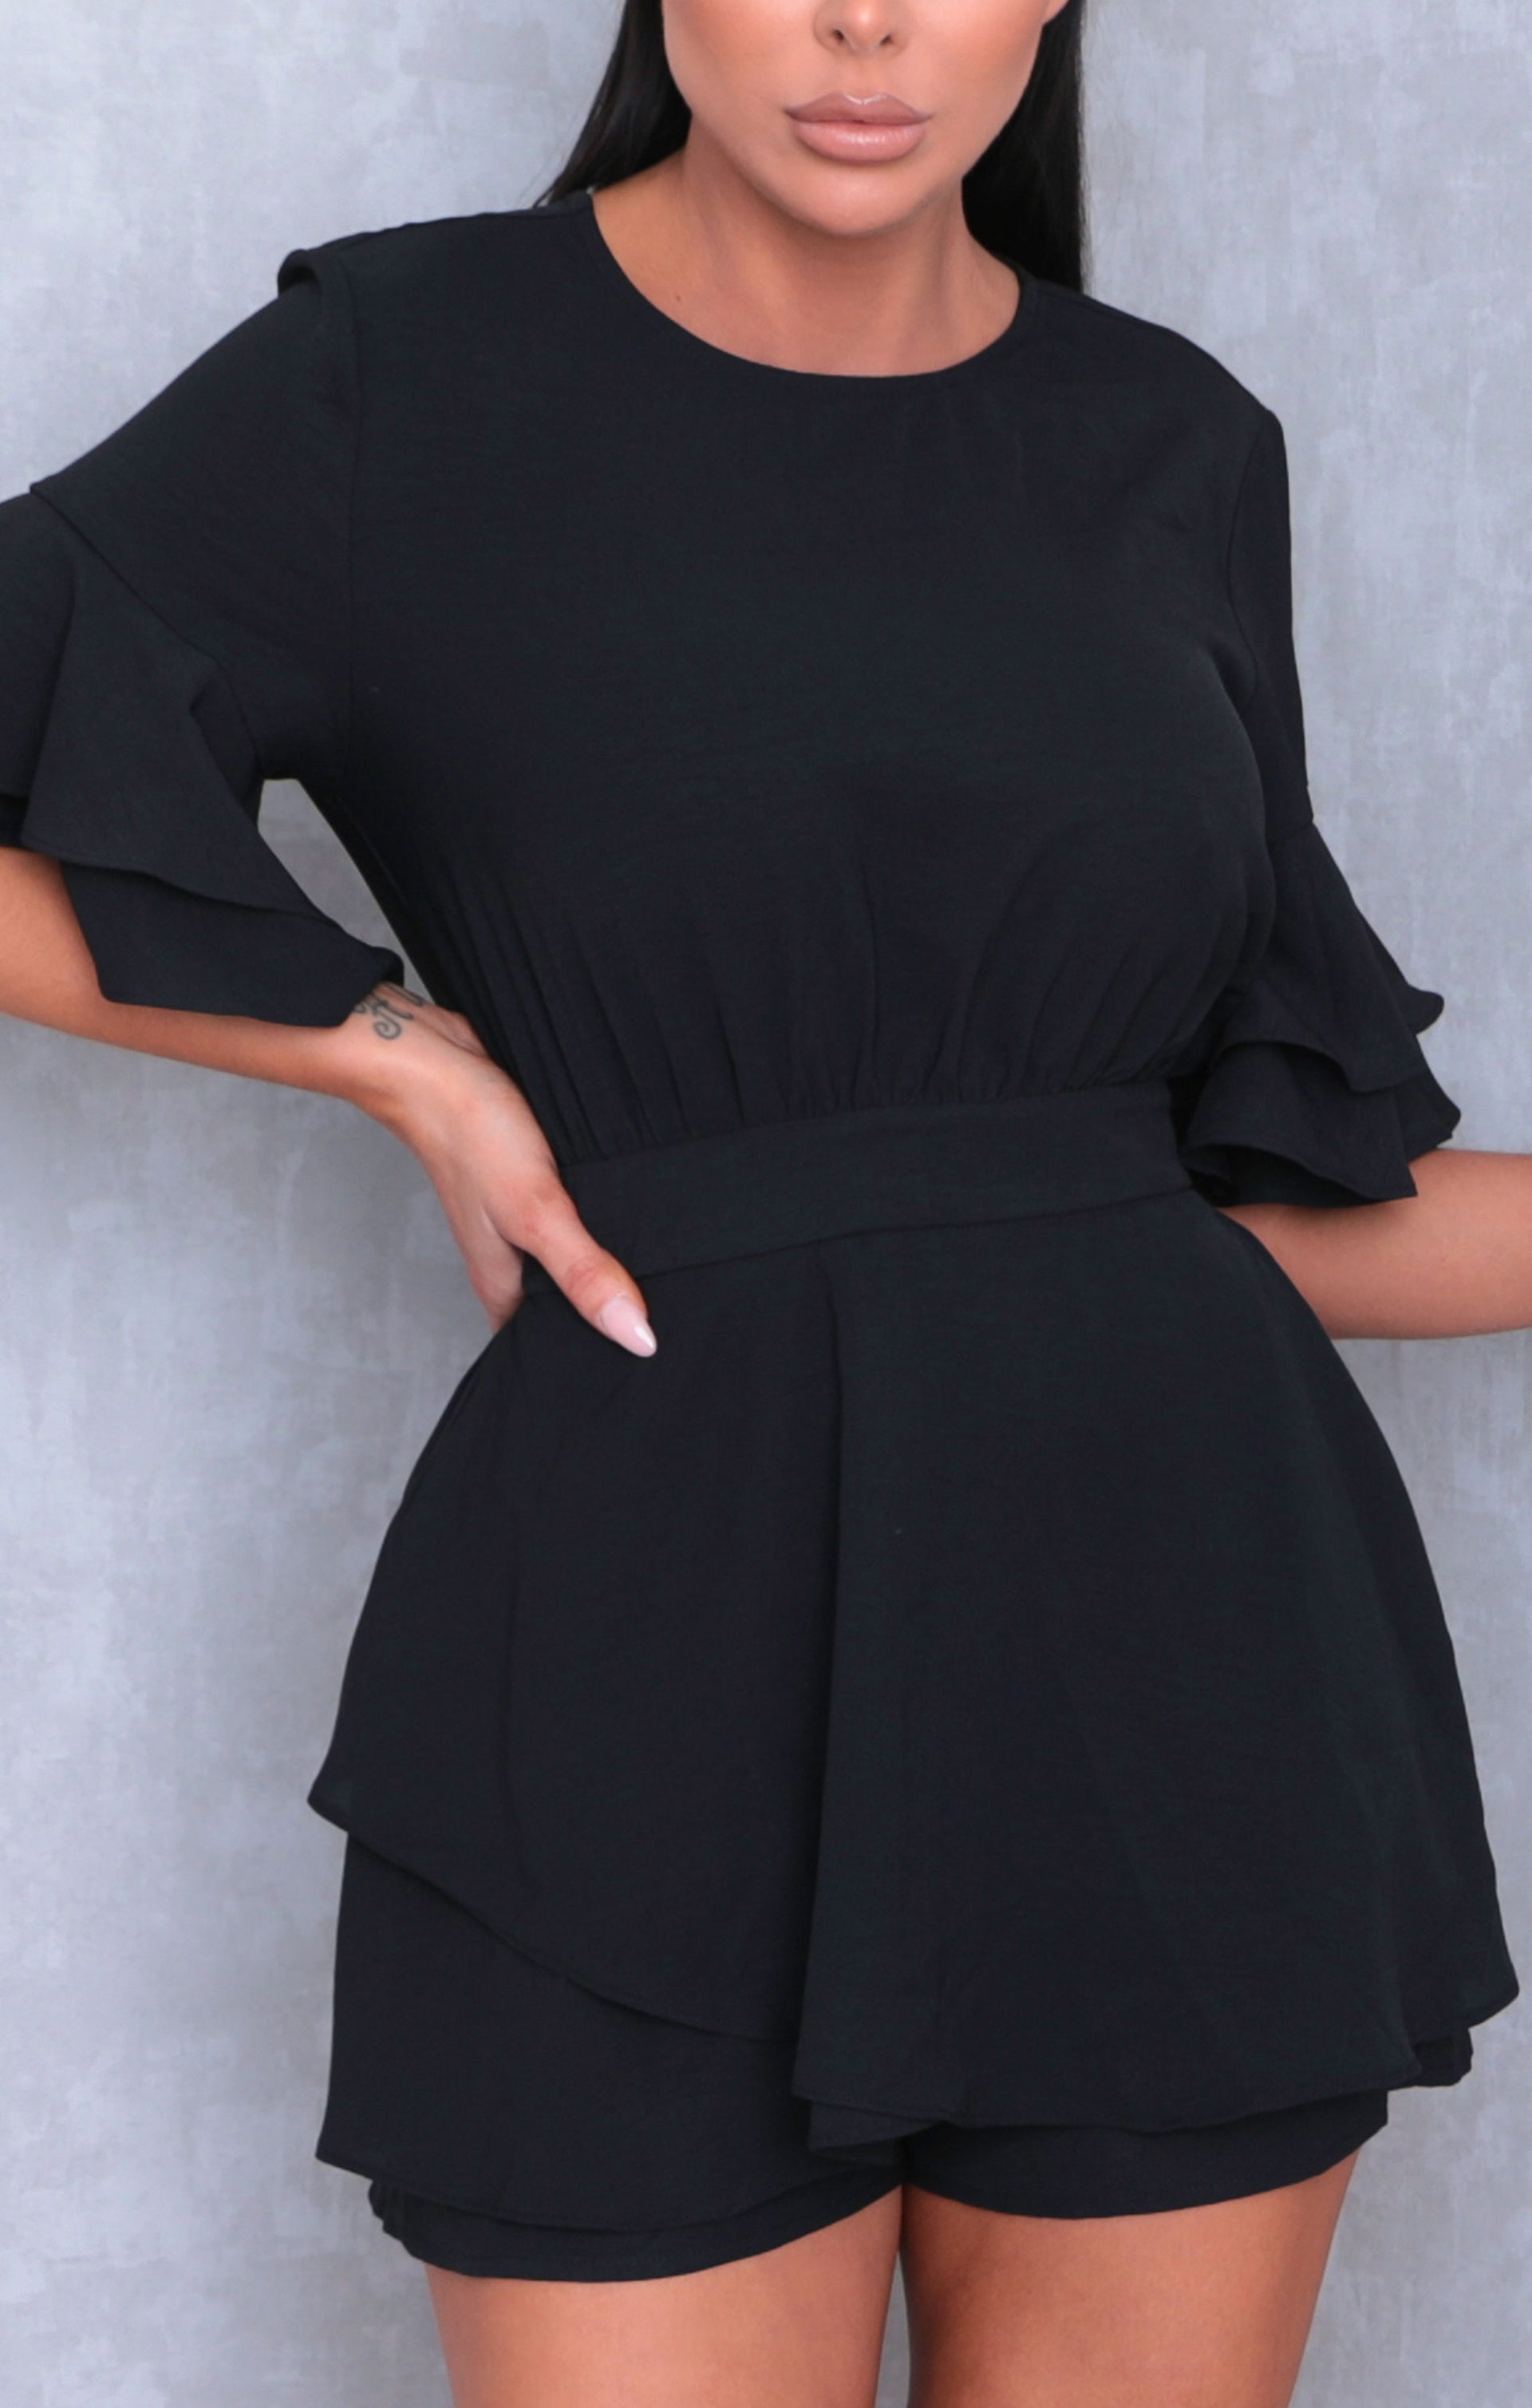 Black Frill Sleeve Open Back Skort Playsuit - Tammy